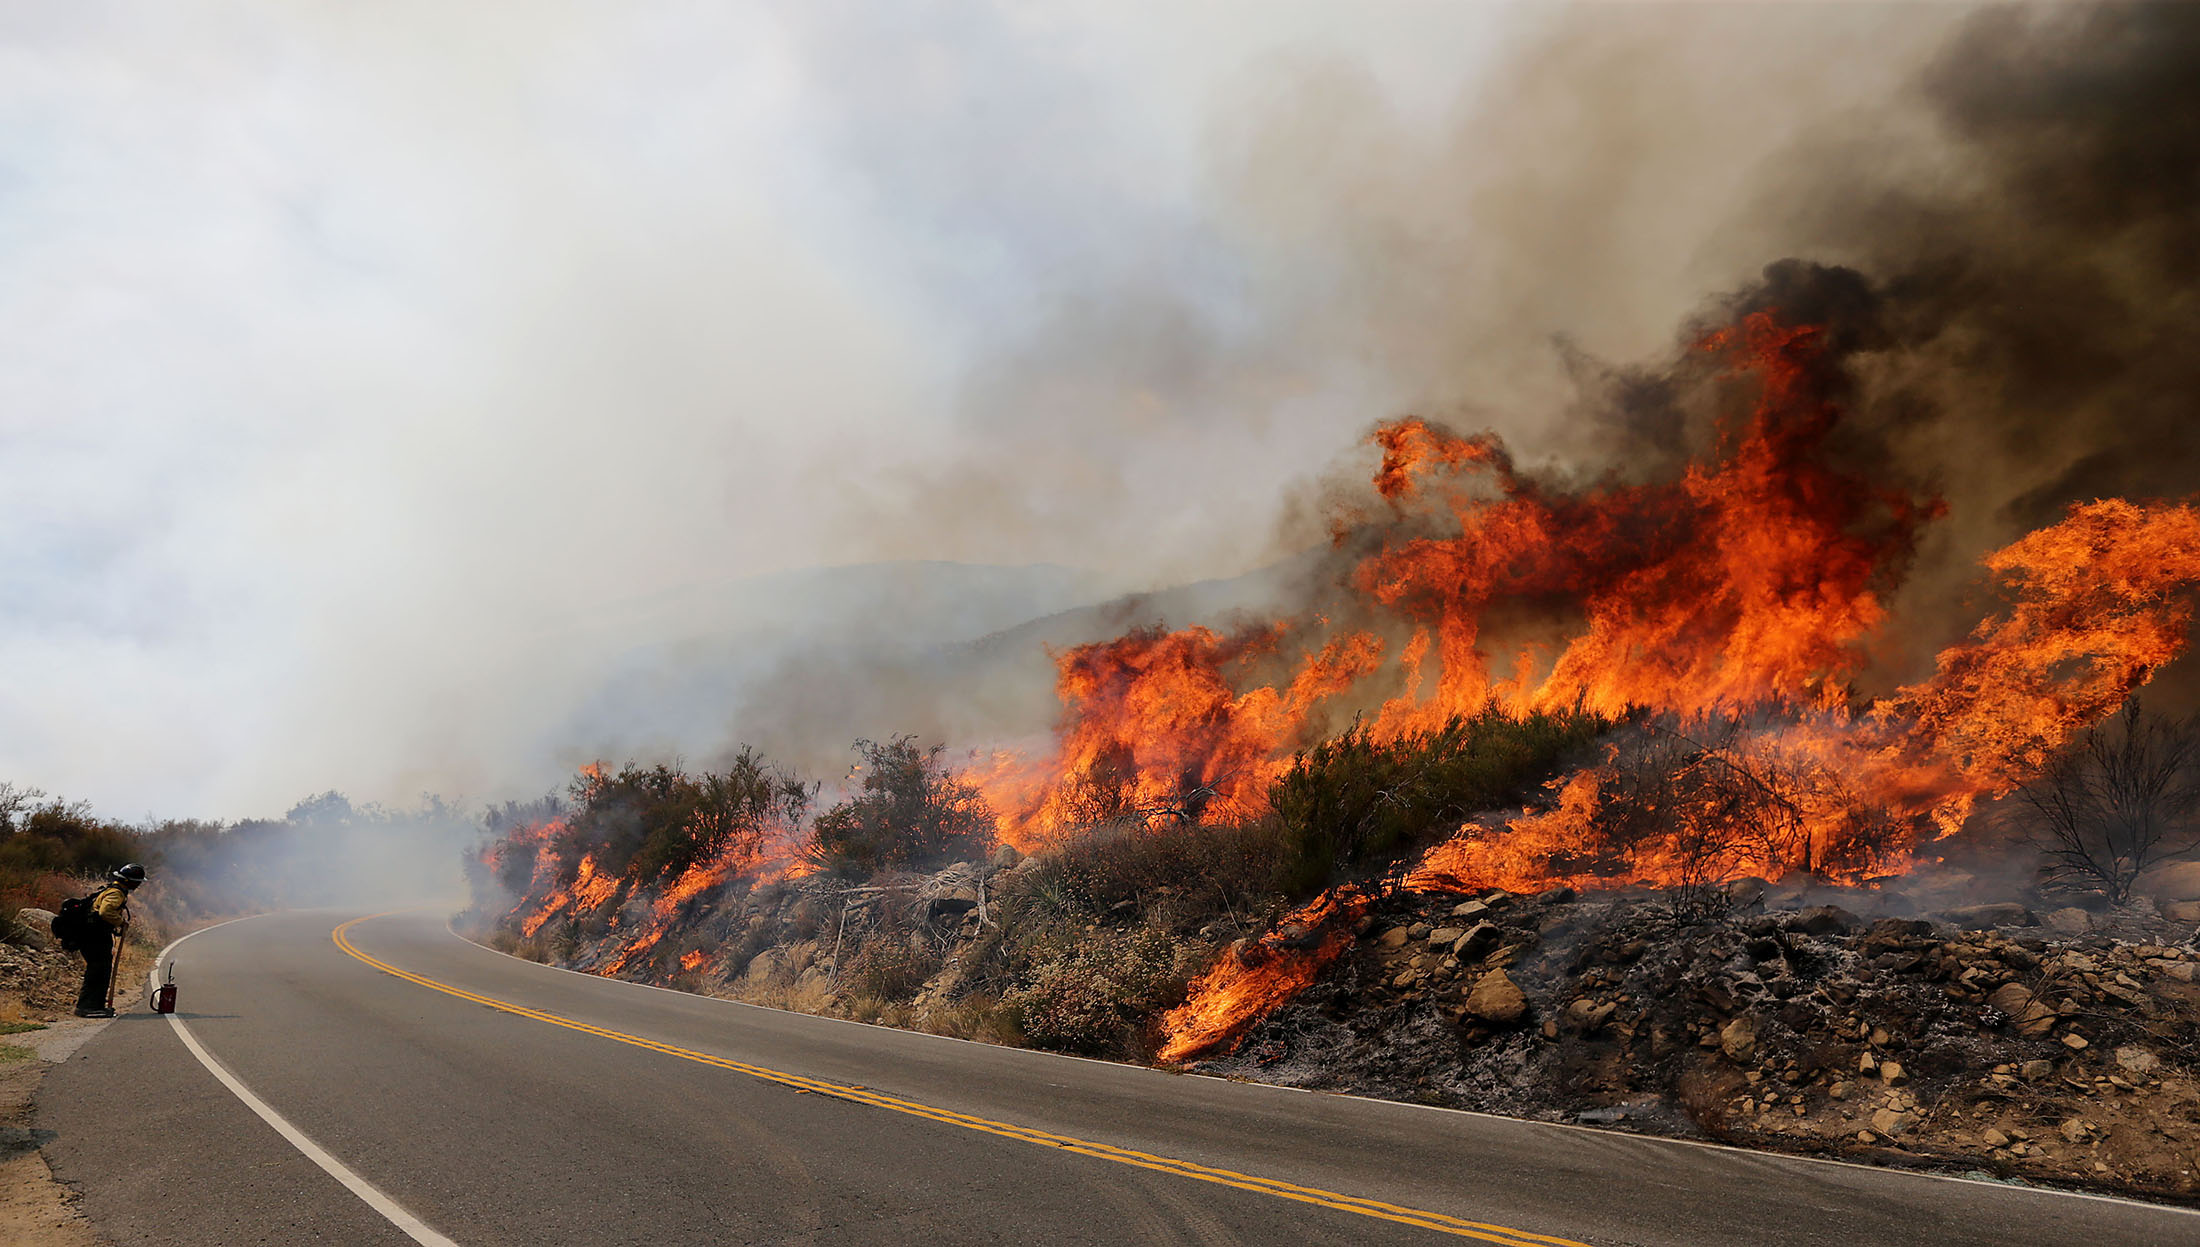 The Cranston fire jumped from 25 acres to hundreds of acres within minutes, according to tweets from the San Bernardino National Forest above Hemet on Wednesday, July 25, 2018.